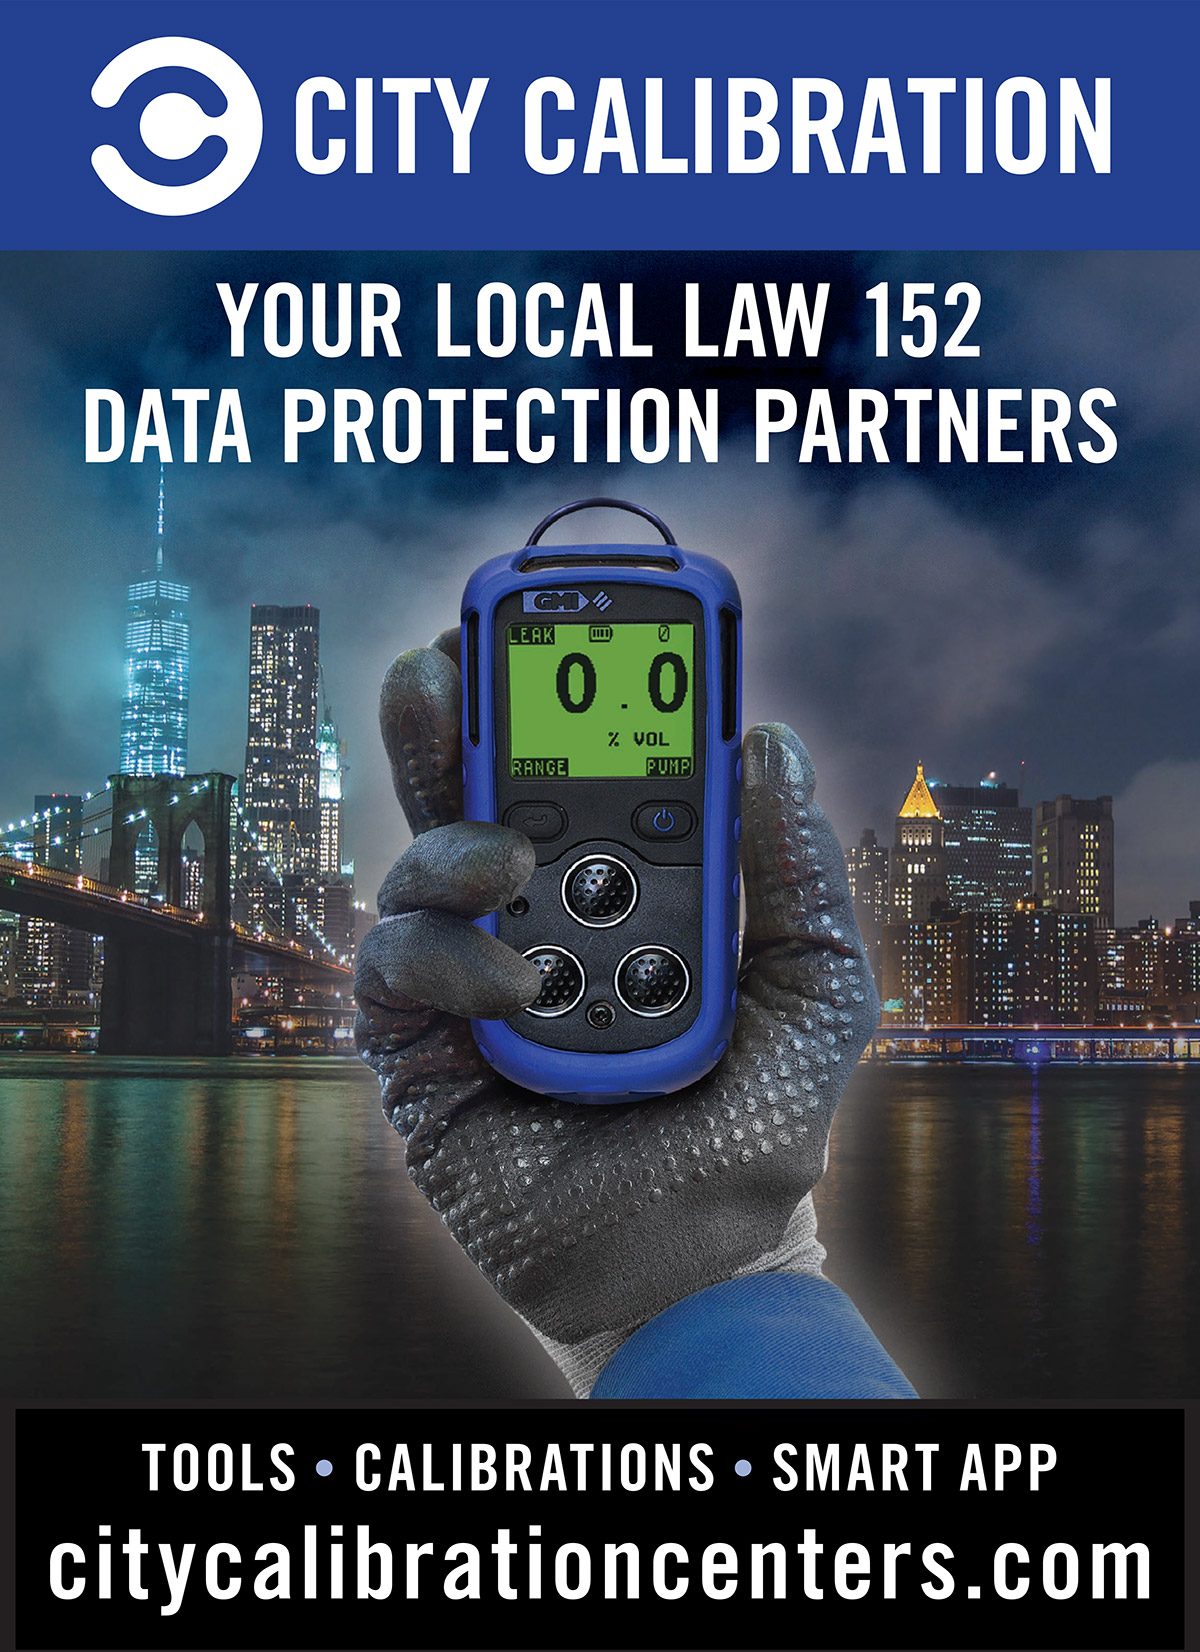 City Calibration: Your Local Law 152 Data Protection Partners. Tools. Calibrations. Smart App.